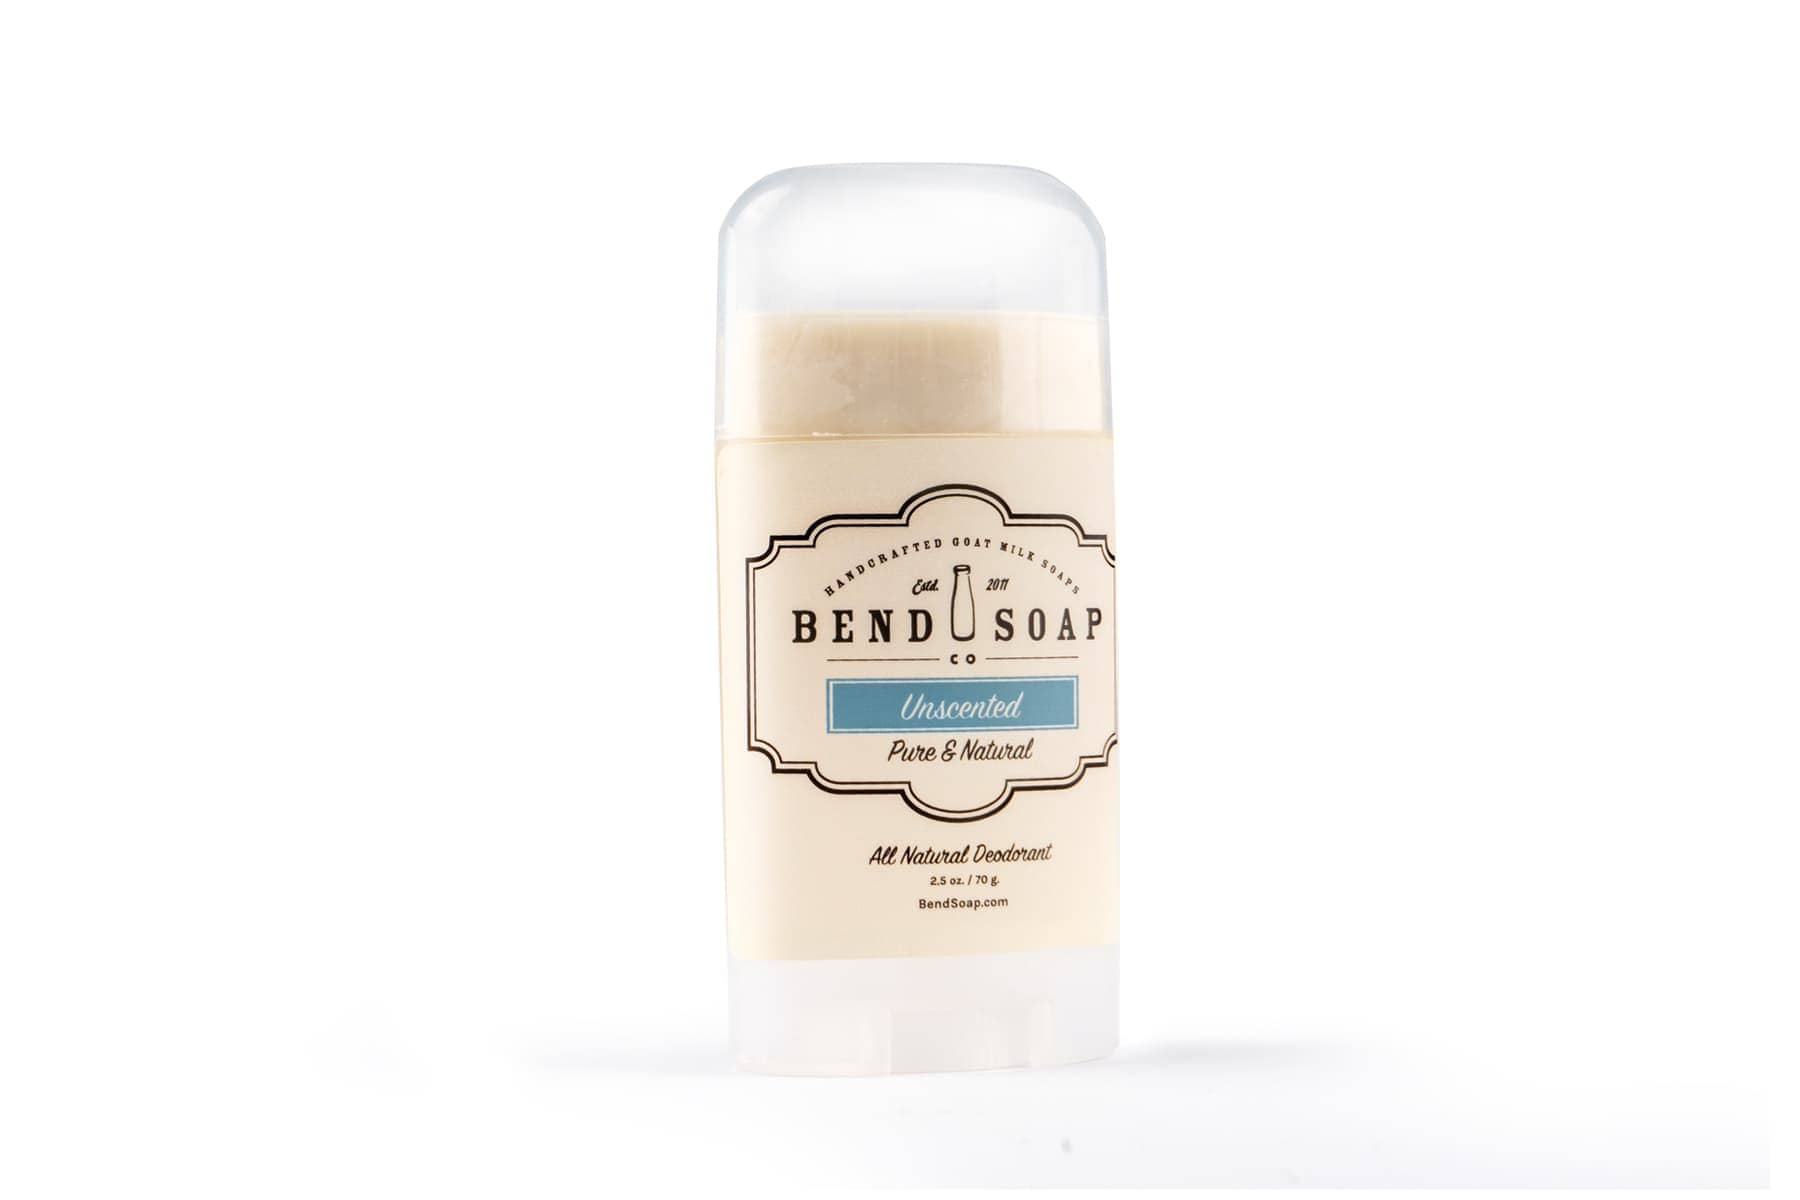 Unscented All Natural Deodorant